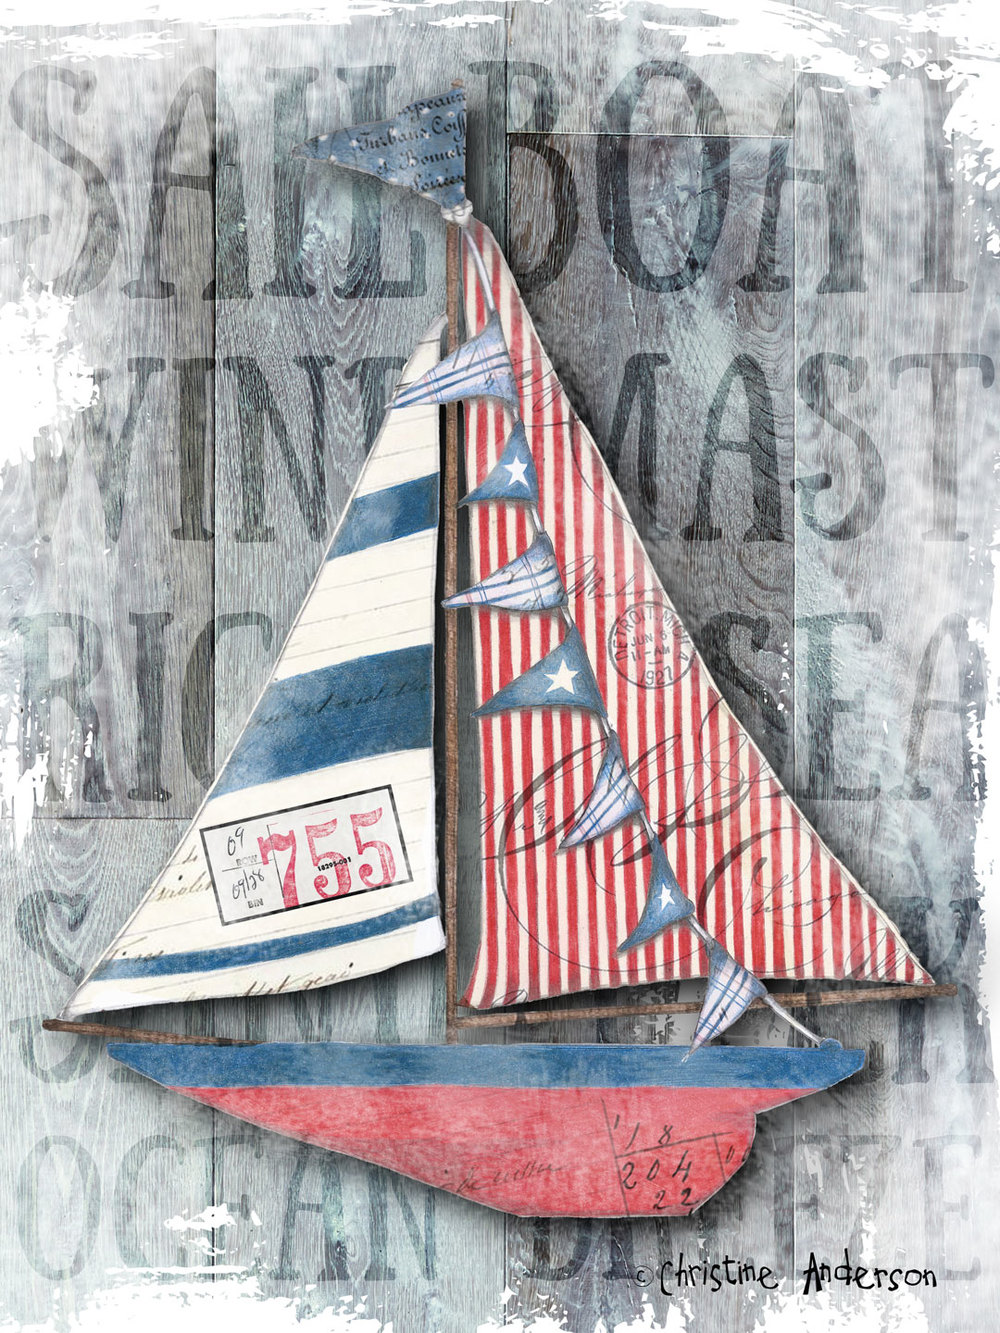 sailboat-distressed-with-background-Paint.jpg